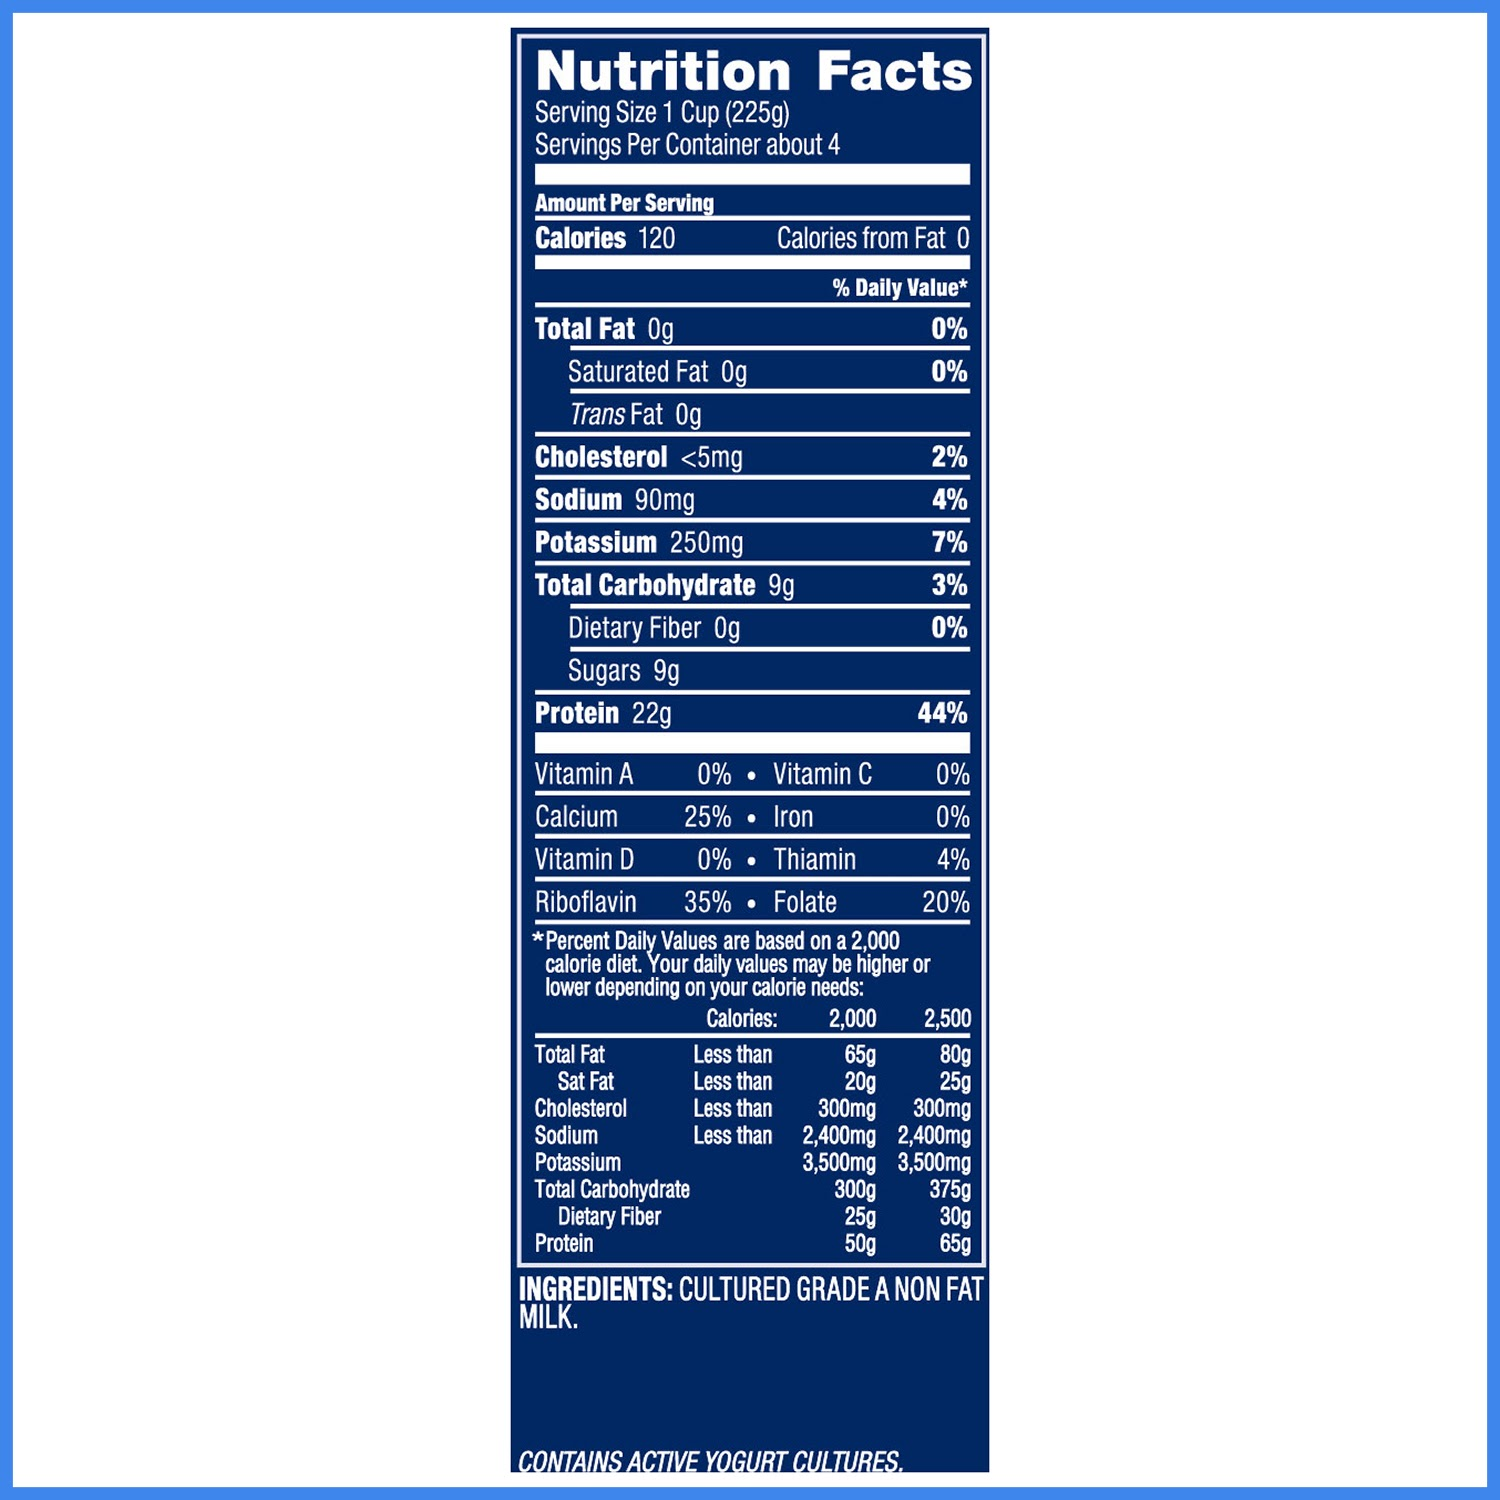 Oikos Plain Greek Yogurt Nutrition Facts